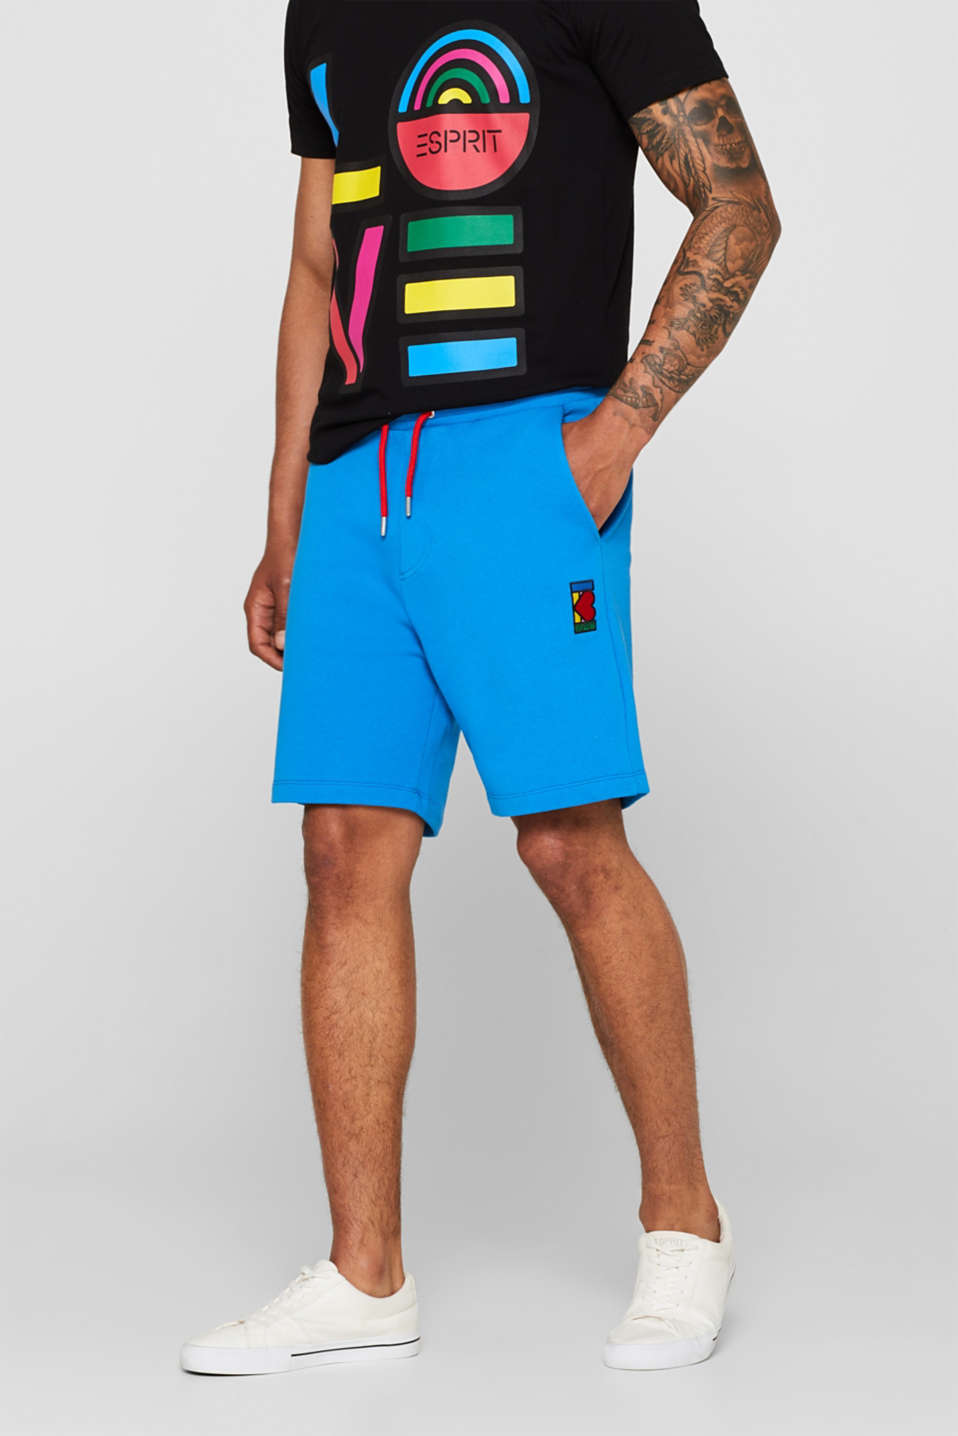 Esprit - CRAIG & KARL: Men sweatshirt fabric shorts, organic cotton